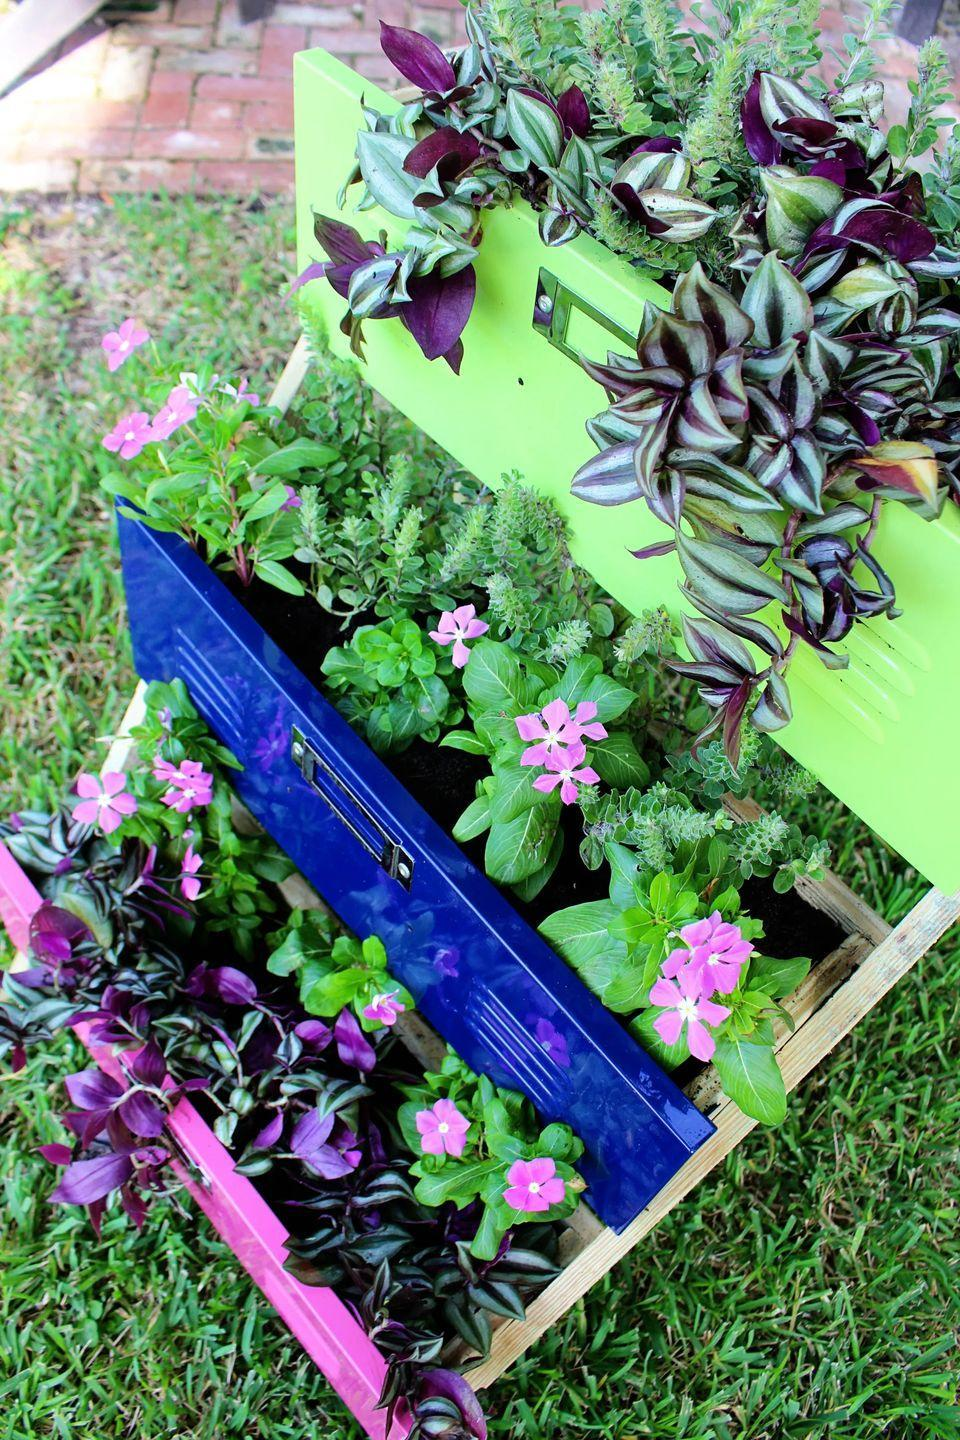 """<p>A set of old locker drawers scored at a thrift store is transformed into a unique planter with a few coats of vibrant paint.</p><p><strong>Get the tutorial at <a href=""""http://withinthegrove.com/diy-garden-planters-using-locker-drawers/"""" rel=""""nofollow noopener"""" target=""""_blank"""" data-ylk=""""slk:Within the Grove"""" class=""""link rapid-noclick-resp"""">Within the Grove</a>.</strong></p><p><a class=""""link rapid-noclick-resp"""" href=""""https://go.redirectingat.com?id=74968X1596630&url=https%3A%2F%2Fwww.walmart.com%2Fip%2FGorilla-Wood-Glue-Natural-Wood-Color-4-ounce-Bottle%2F52552281&sref=https%3A%2F%2Fwww.thepioneerwoman.com%2Fhome-lifestyle%2Fgardening%2Fg36556911%2Fdiy-planters%2F"""" rel=""""nofollow noopener"""" target=""""_blank"""" data-ylk=""""slk:SHOP WOOD GLUE"""">SHOP WOOD GLUE</a></p>"""